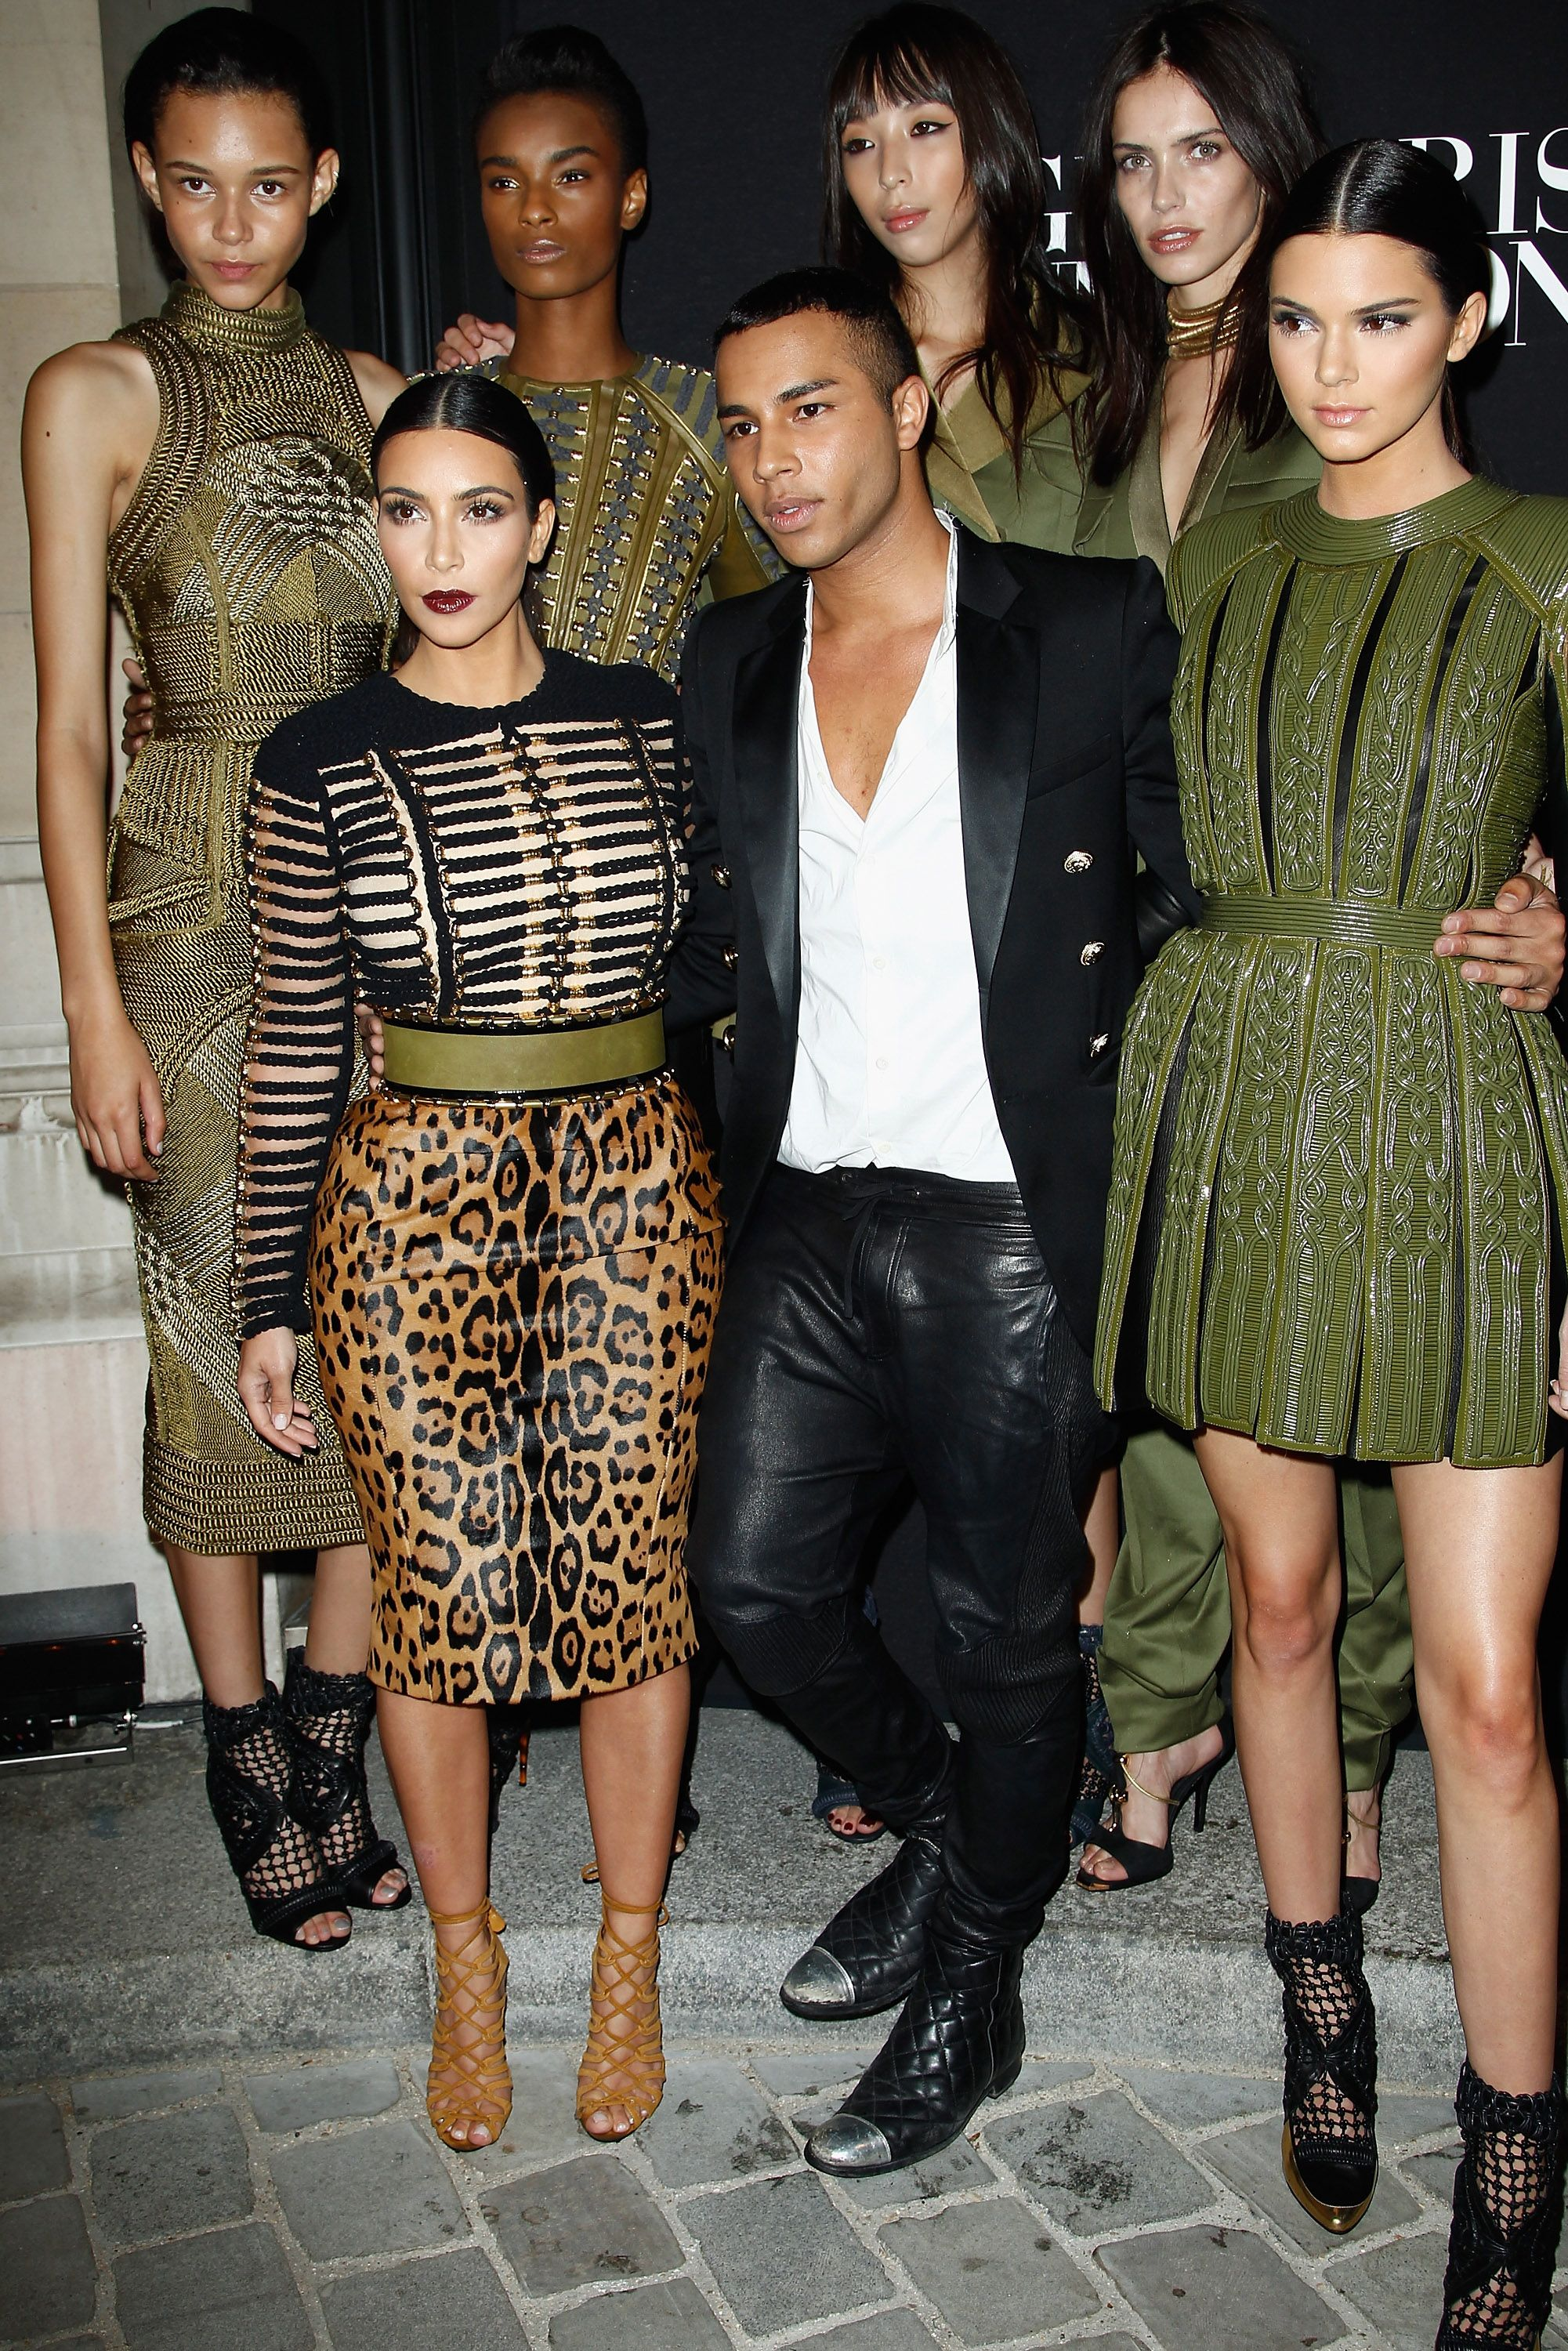 While we #STAYHOME, we invite you to relive the best moments from the #BALMAIN archives with Creative Director, #OlivierRousteing on our #YouTube channel, starting with the #BALMAINFW14 collection.   This collection symbolized the birth of the #BALMAINARMY on and off the runway with #KimKardashian, #KendallJenner, #Issalish, #BinxWalton, #KaylaScott and #AmandaWellsh at the #VogueParis Foundation Gala in off-the runway looks.  #BALMAINENSEMBLE